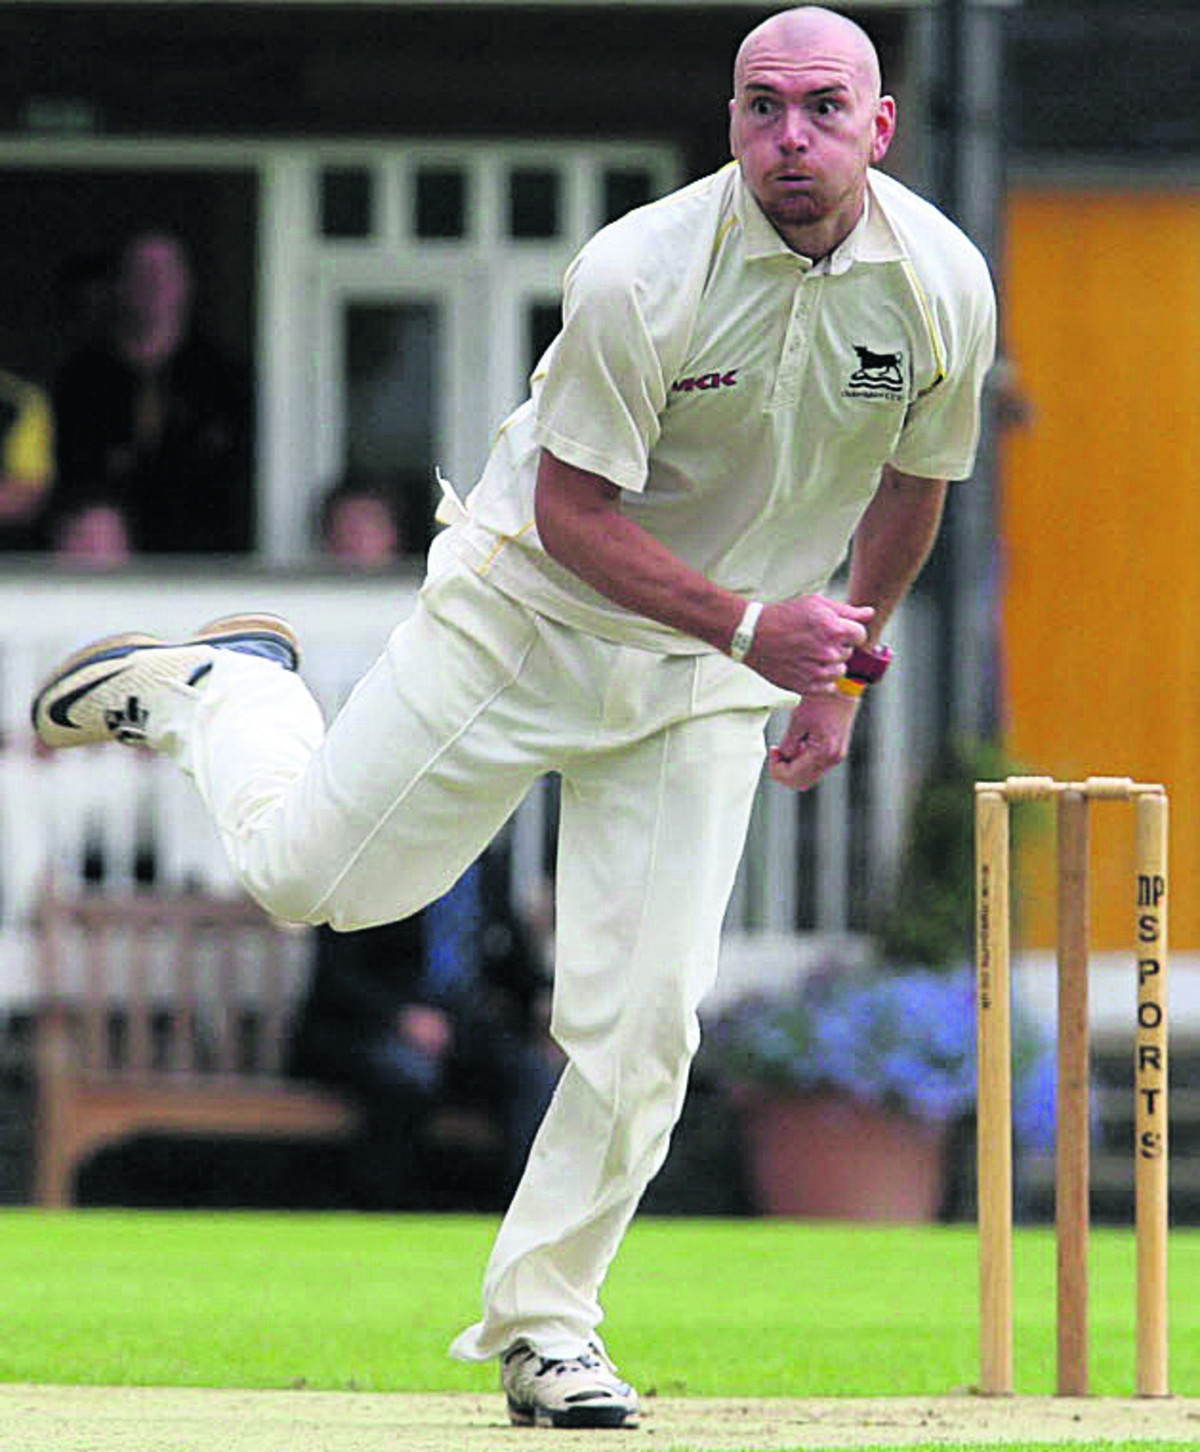 Chad Keegan took five wickets for Oxon against Cheshire at Nantwich